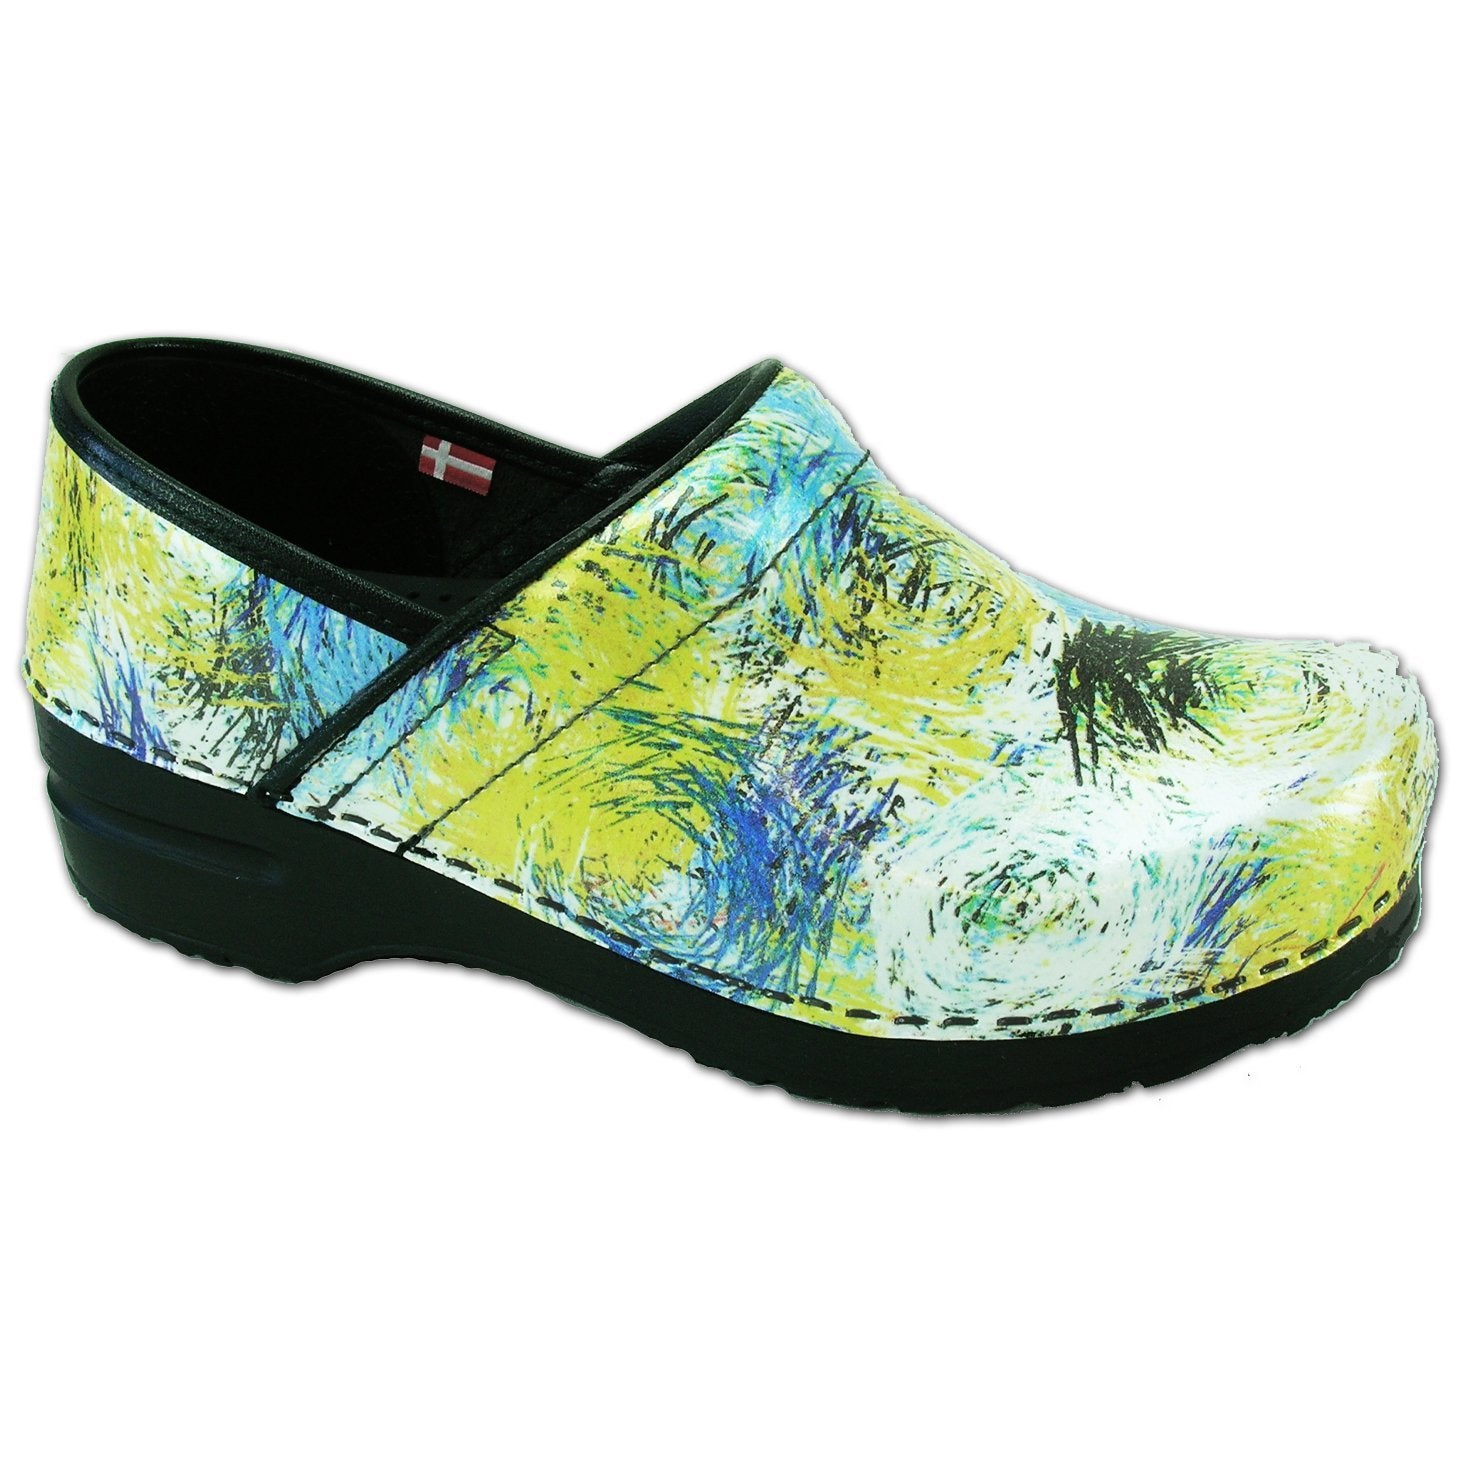 Sanita Limited Grass Women's Closed Back Clog